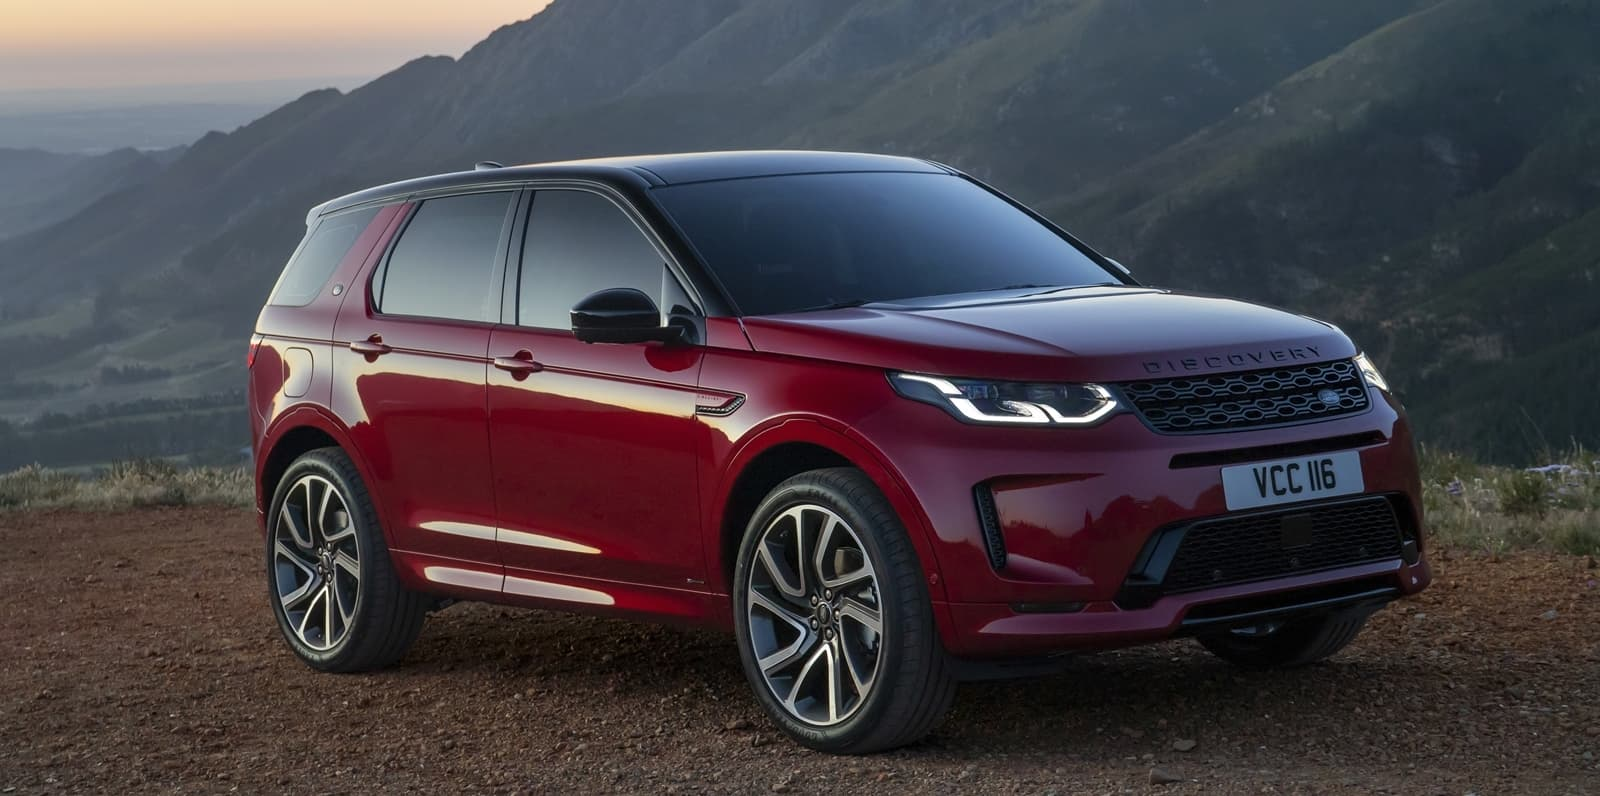 2020 Land Rover Discovery Sport Spy Shoot